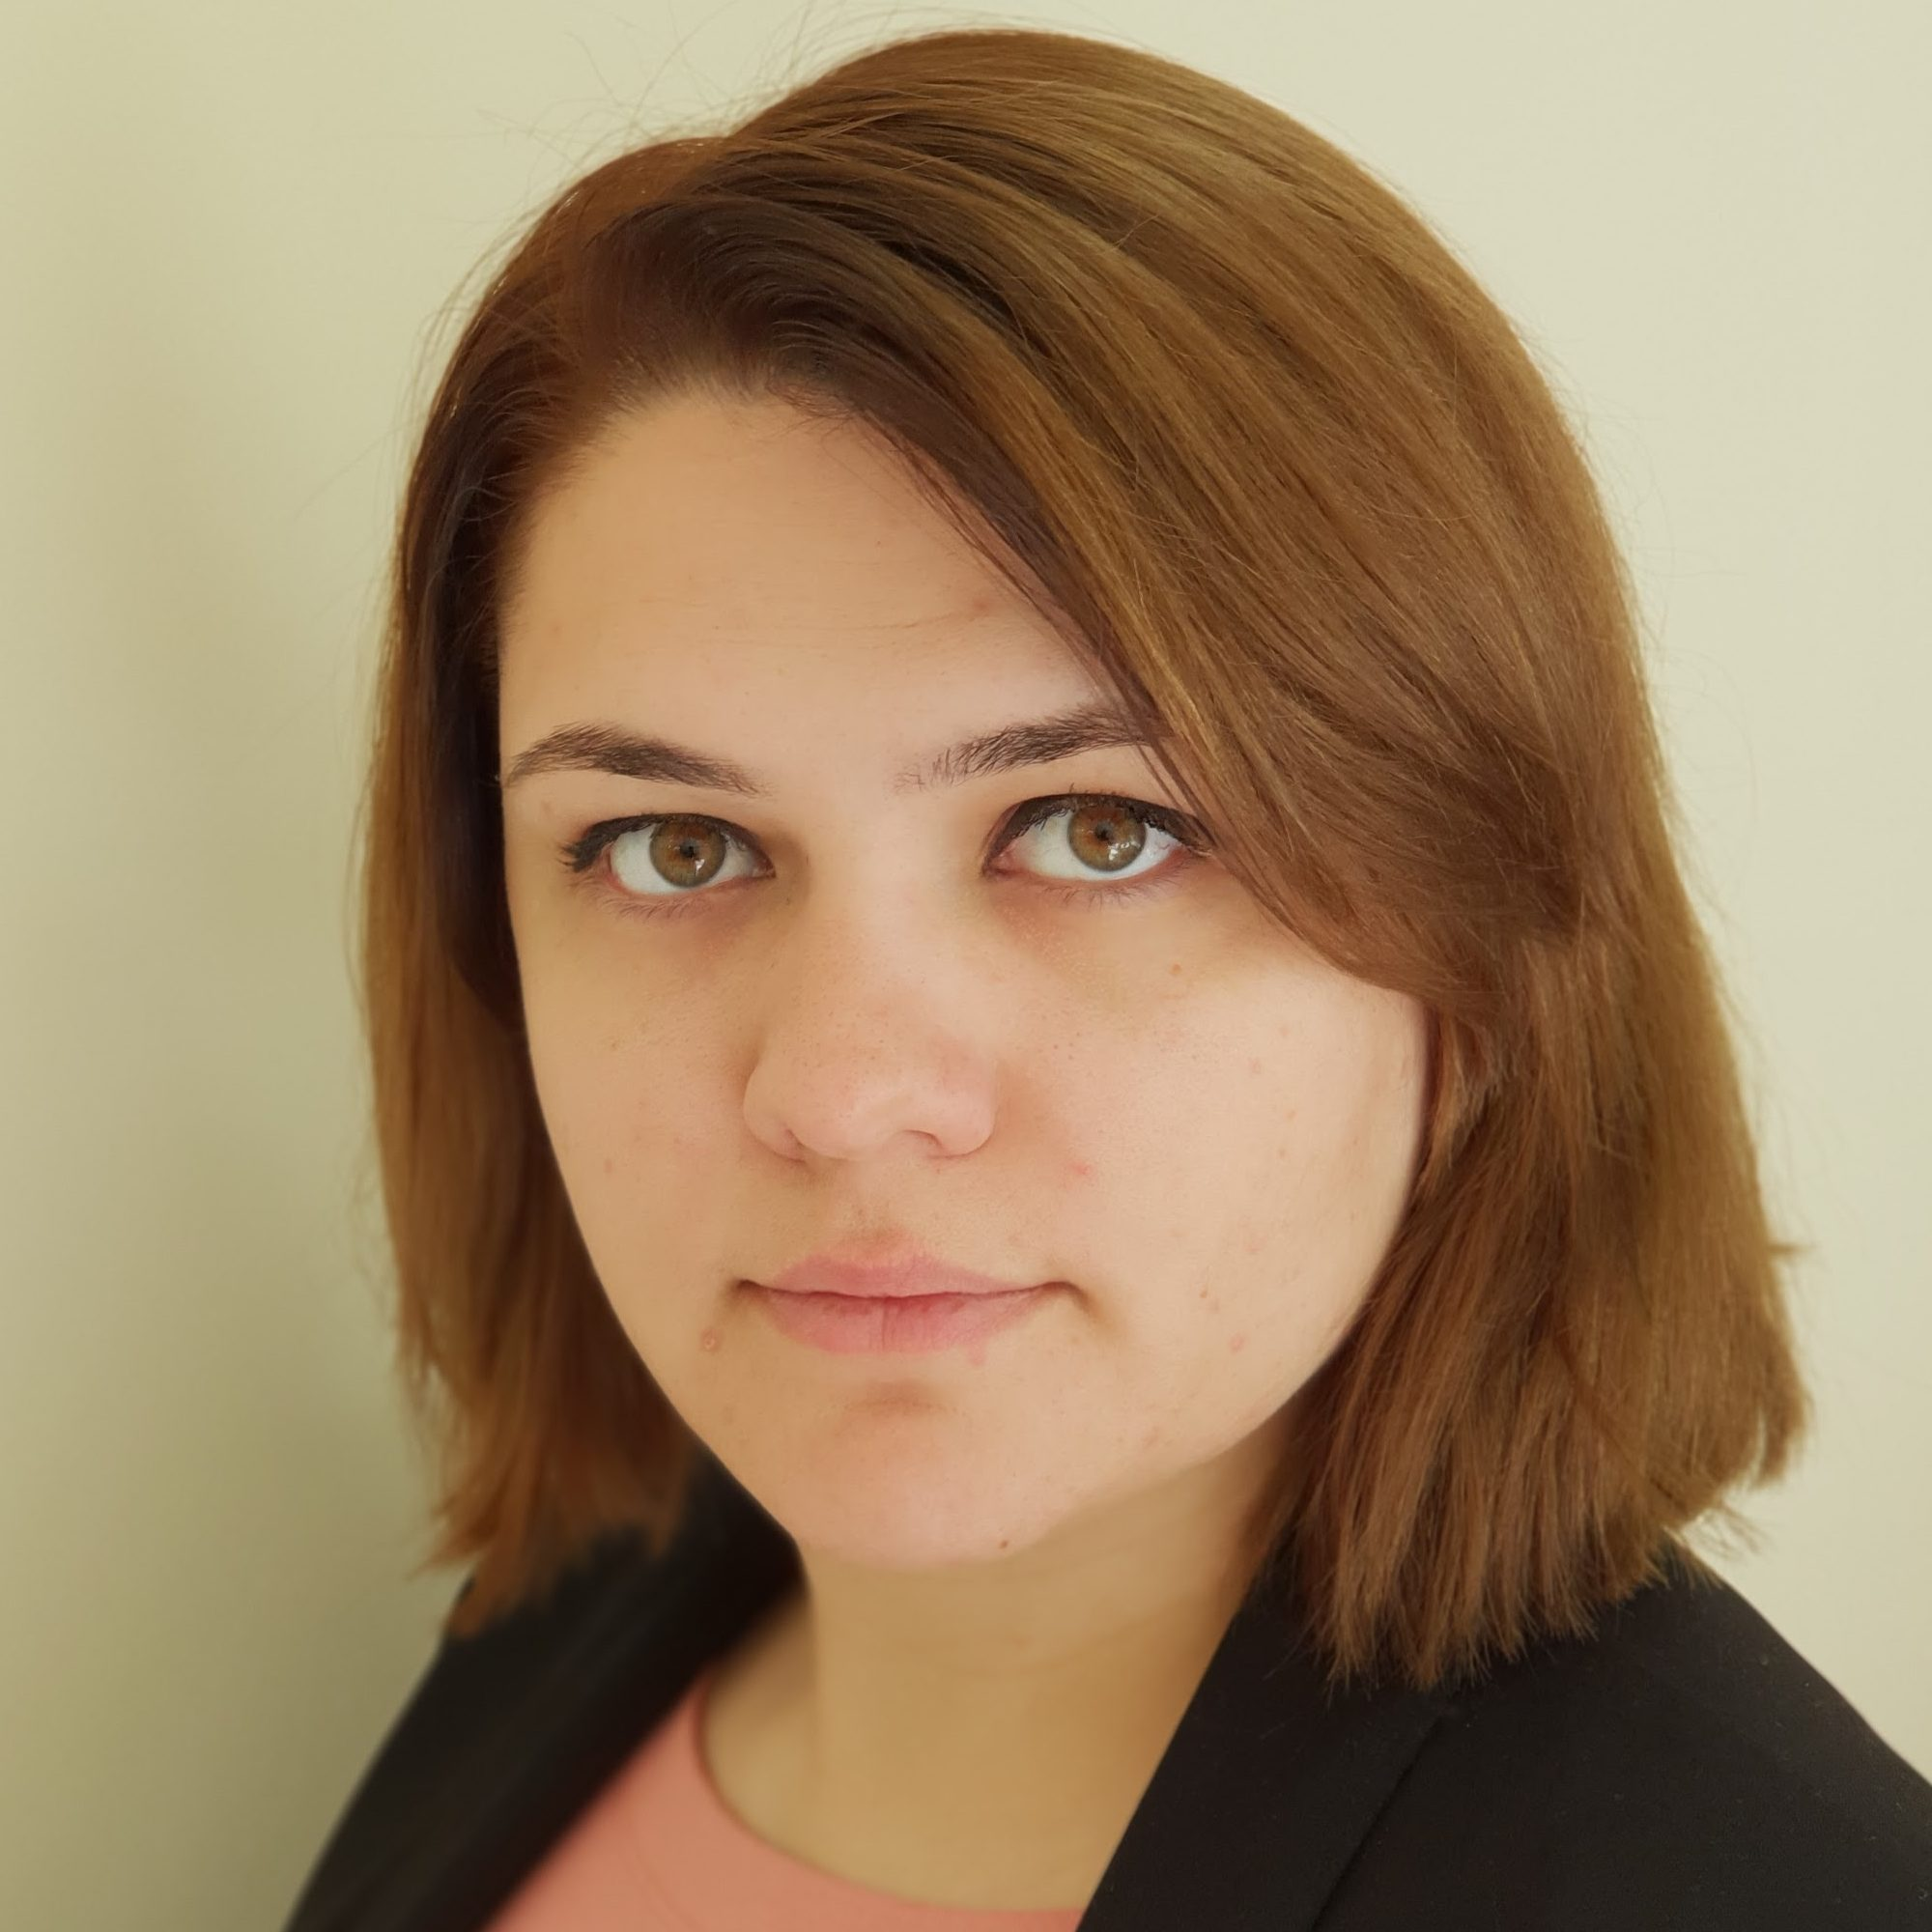 Daniela Andreevska - how to get clients in real estate - Tips from the pros